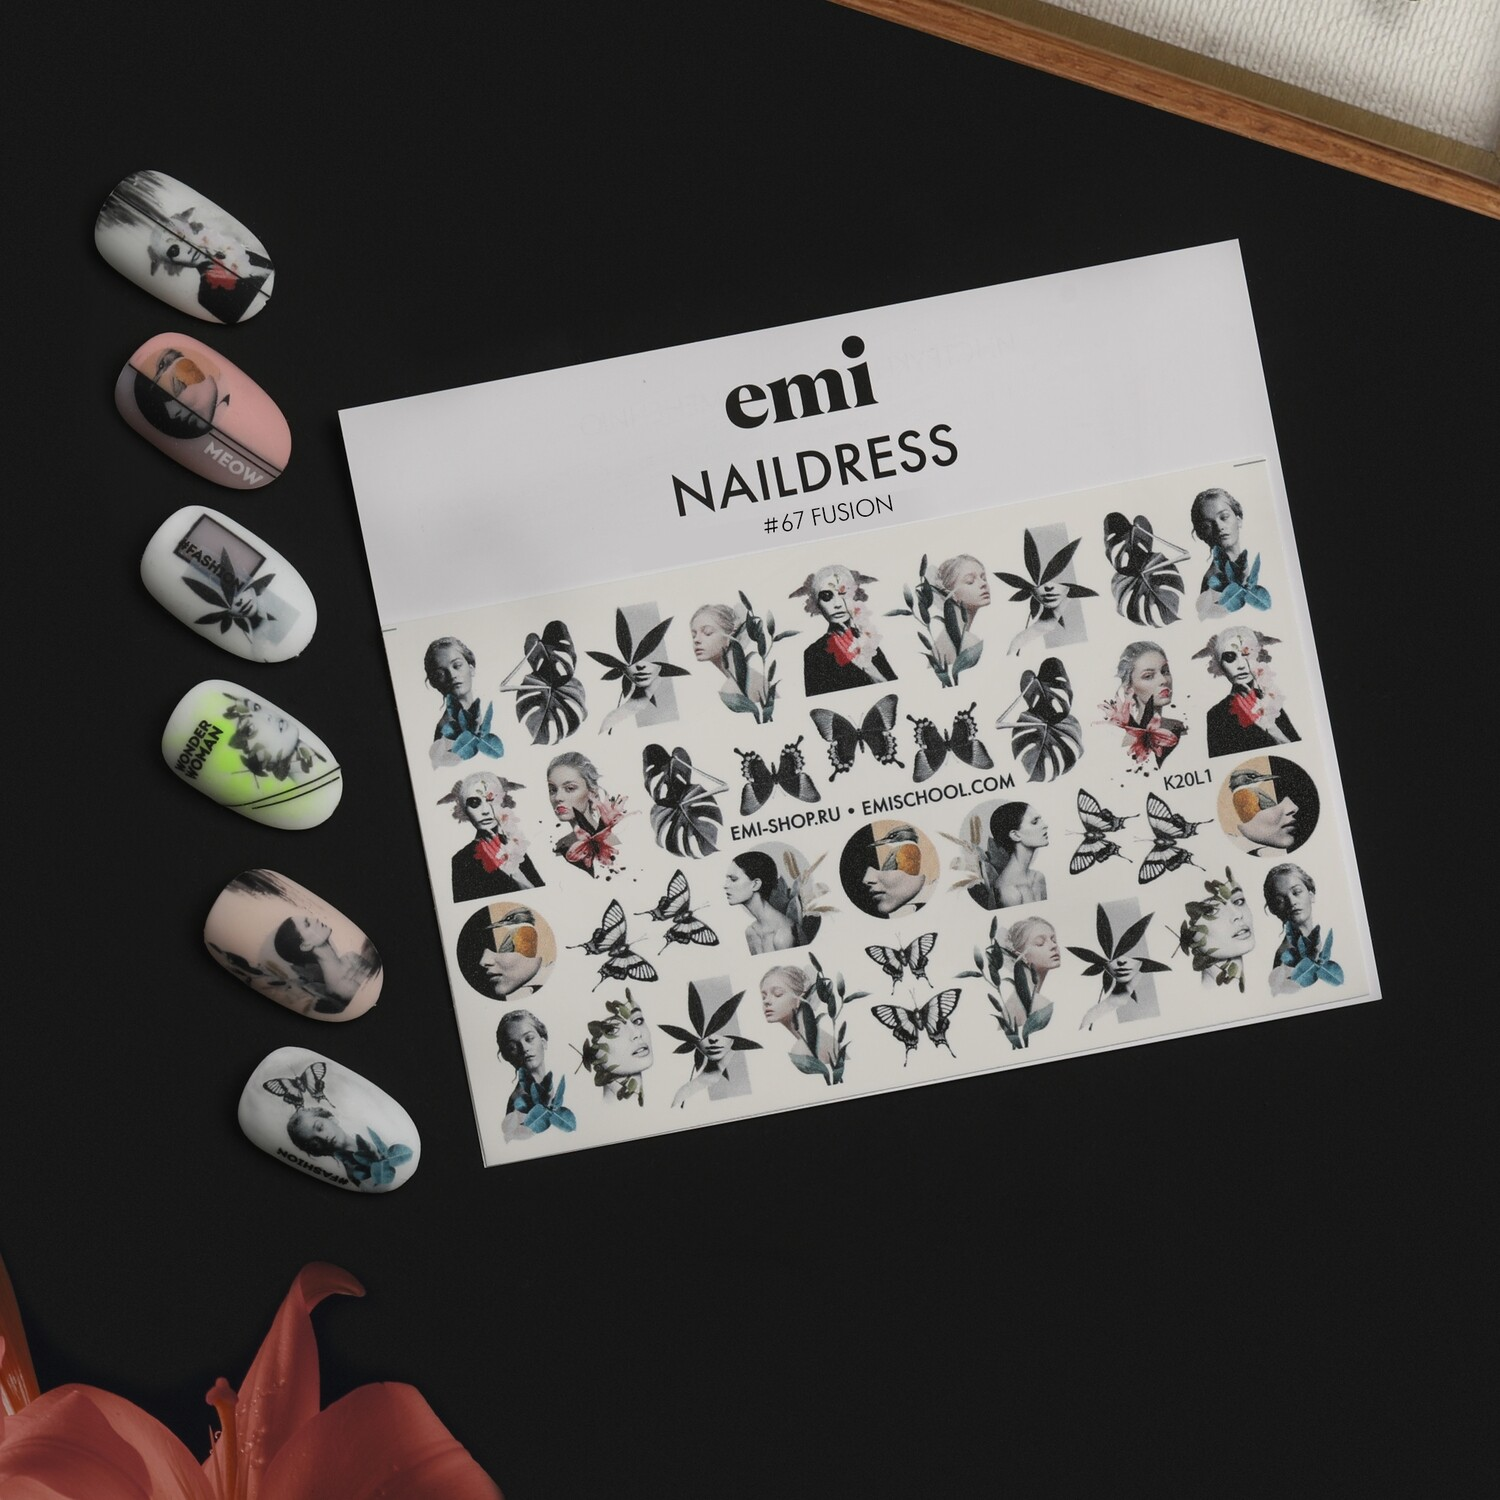 Naildress Slider Design #67 Fusion